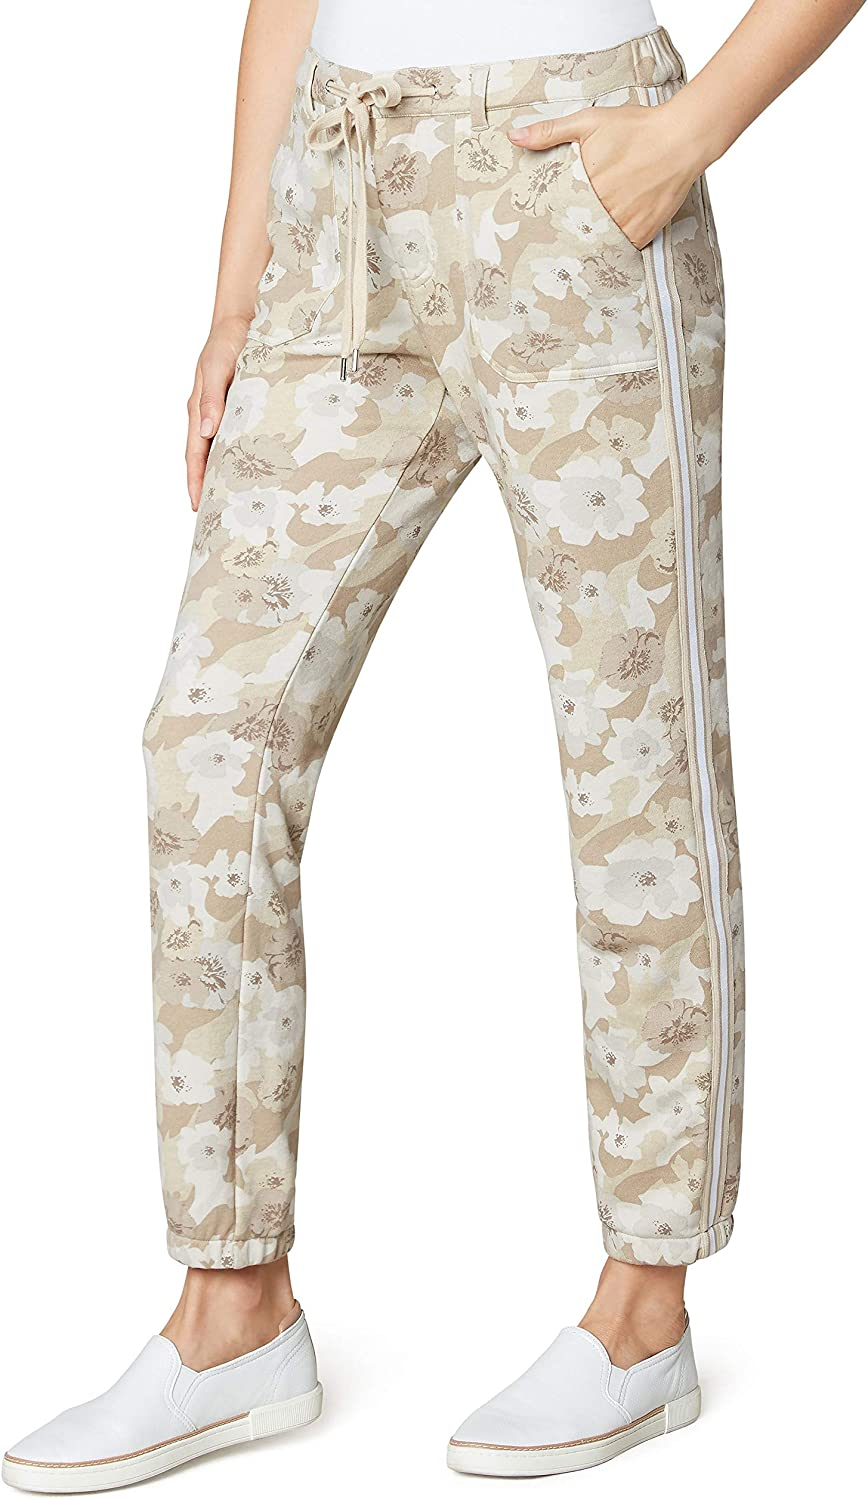 Liverpool Portland Mall OFFicial site Women's Elastic Back 29